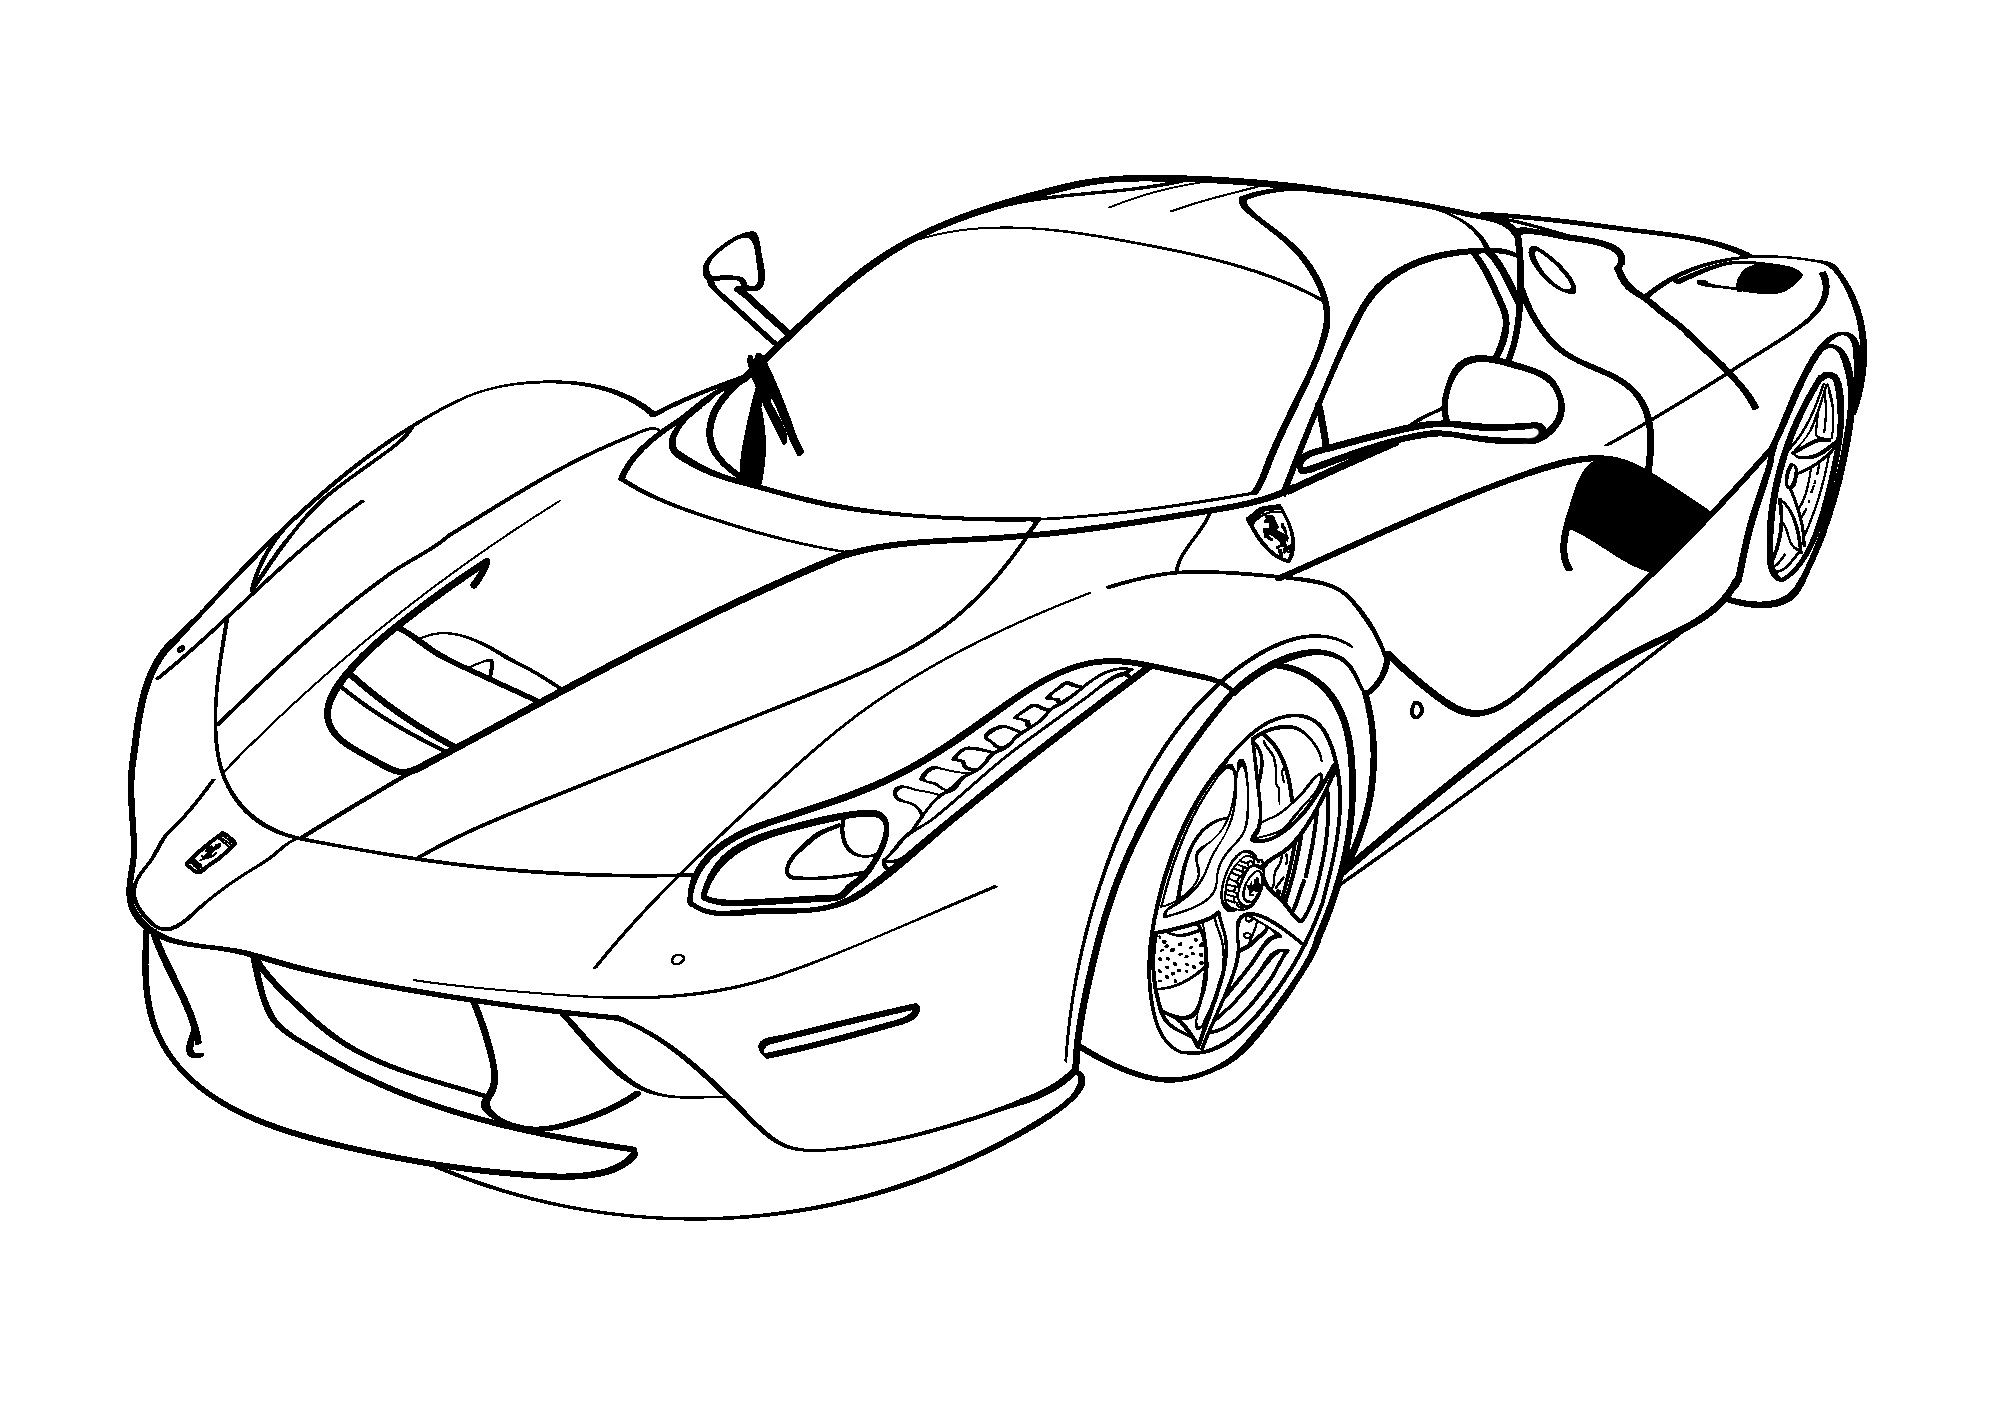 fast cars coloring pages to print | Fast and Furious Coloring Pages Ferrari | Printable ...